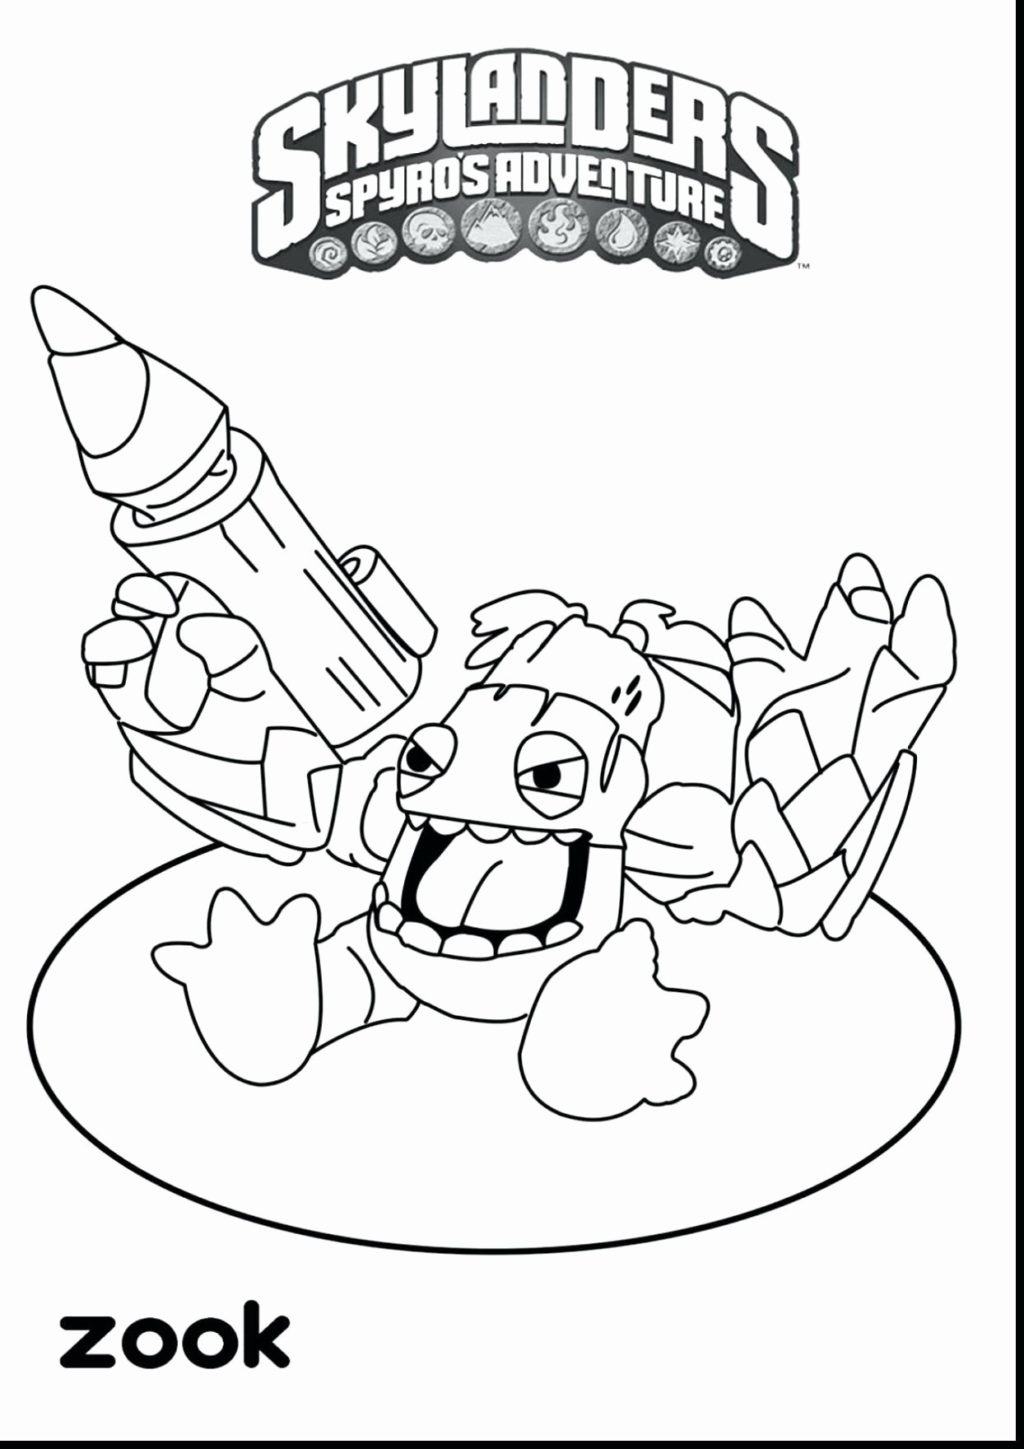 Coloring Book World ~ Coloring Book World Leaf Number Pages For Kids - Free Printable Christmas Color By Number Coloring Pages